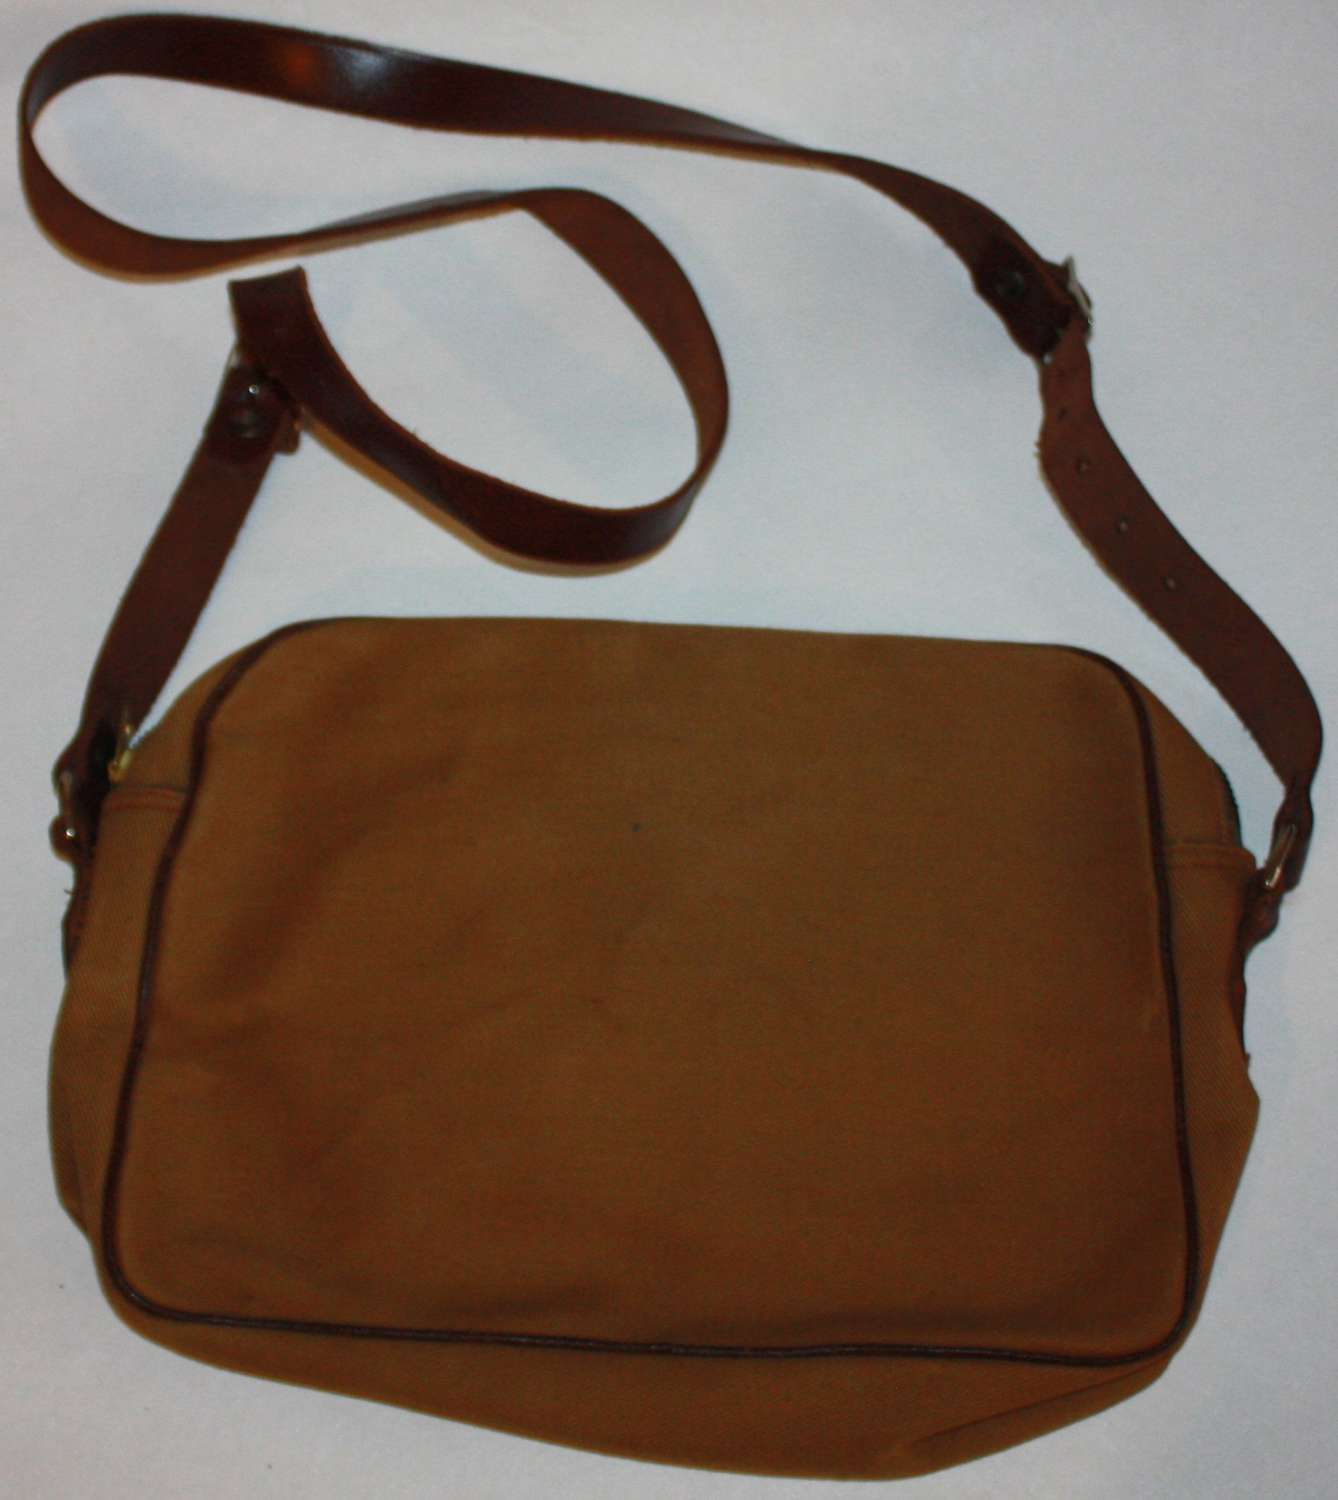 A WWII ATS HANDBAG 1945 DATED IN MINT CONDITION MADE BY CWS LTD